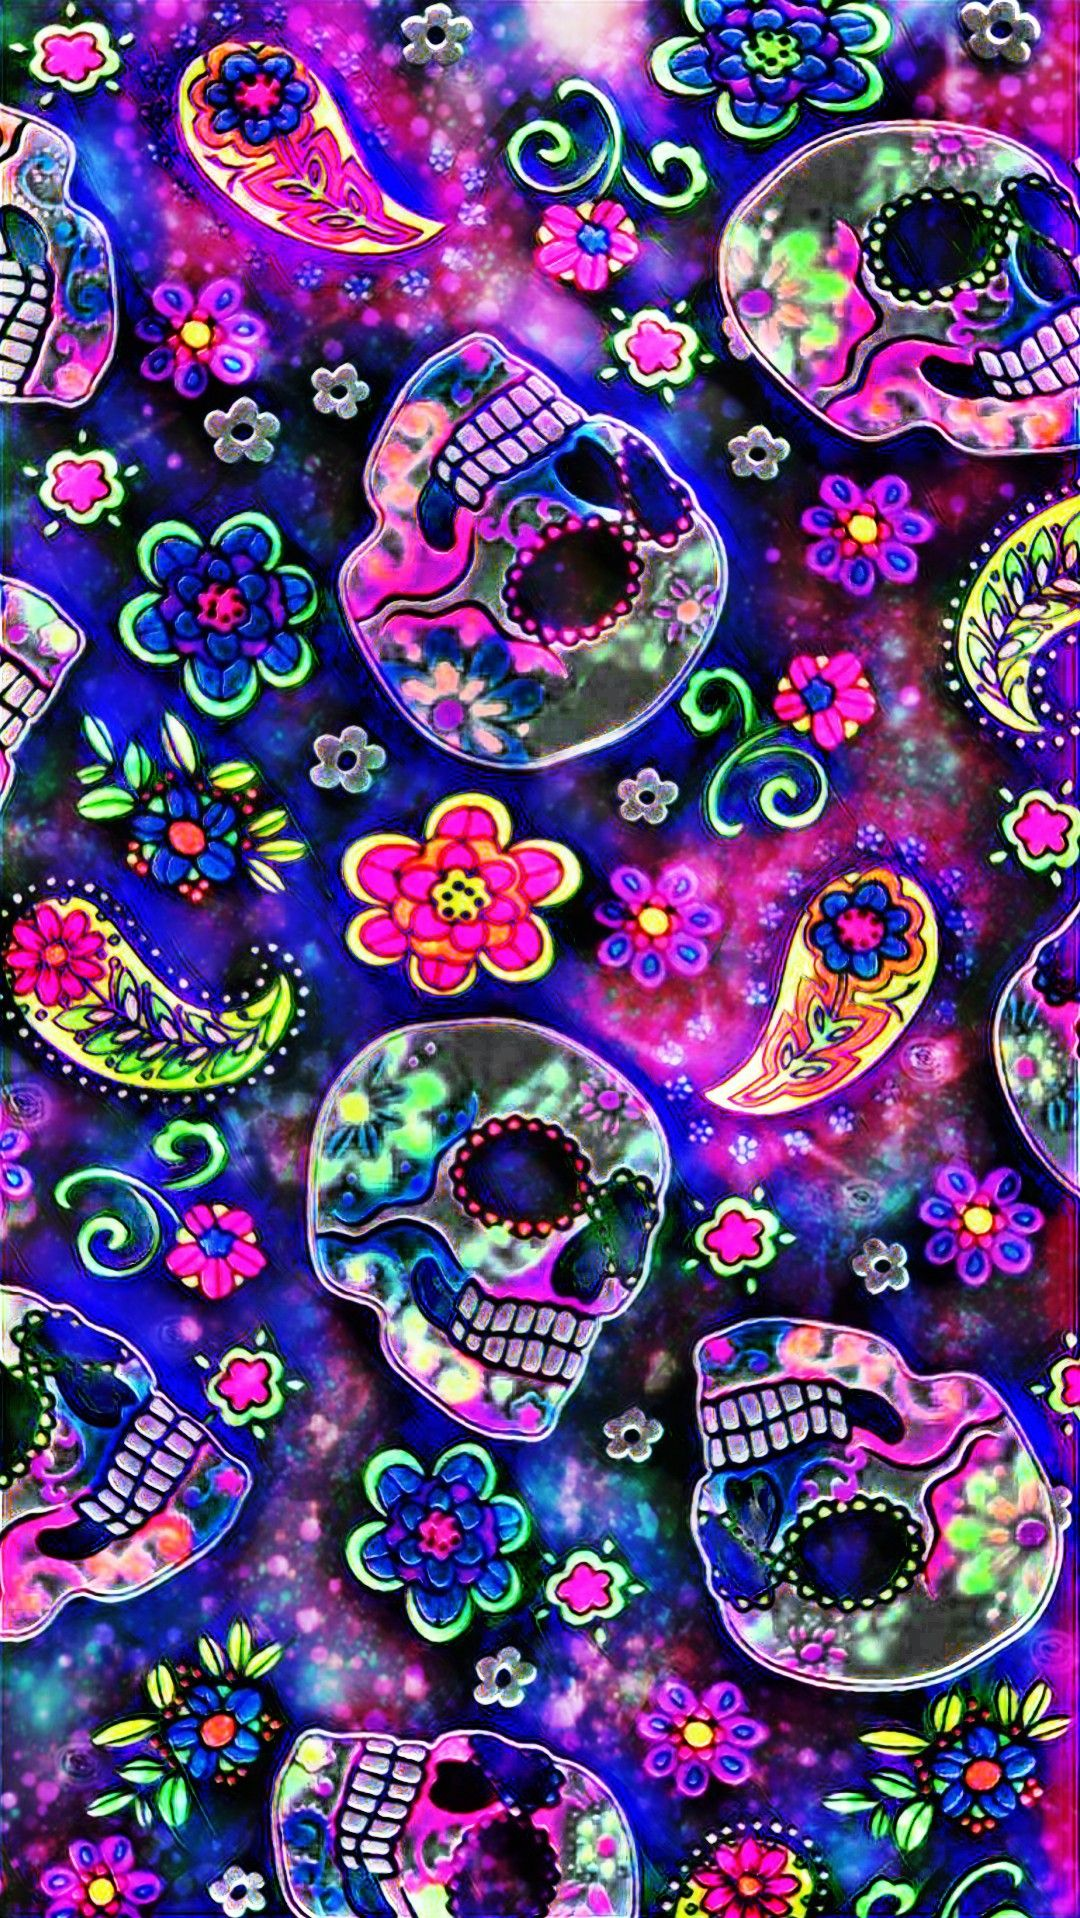 Paisley Skulls Galaxy Made By Me Patterns Colorful Glitter Galaxy Wallpapers Backgrounds Sku Sugar Skull Wallpaper Skull Wallpaper Pink Skull Wallpaper